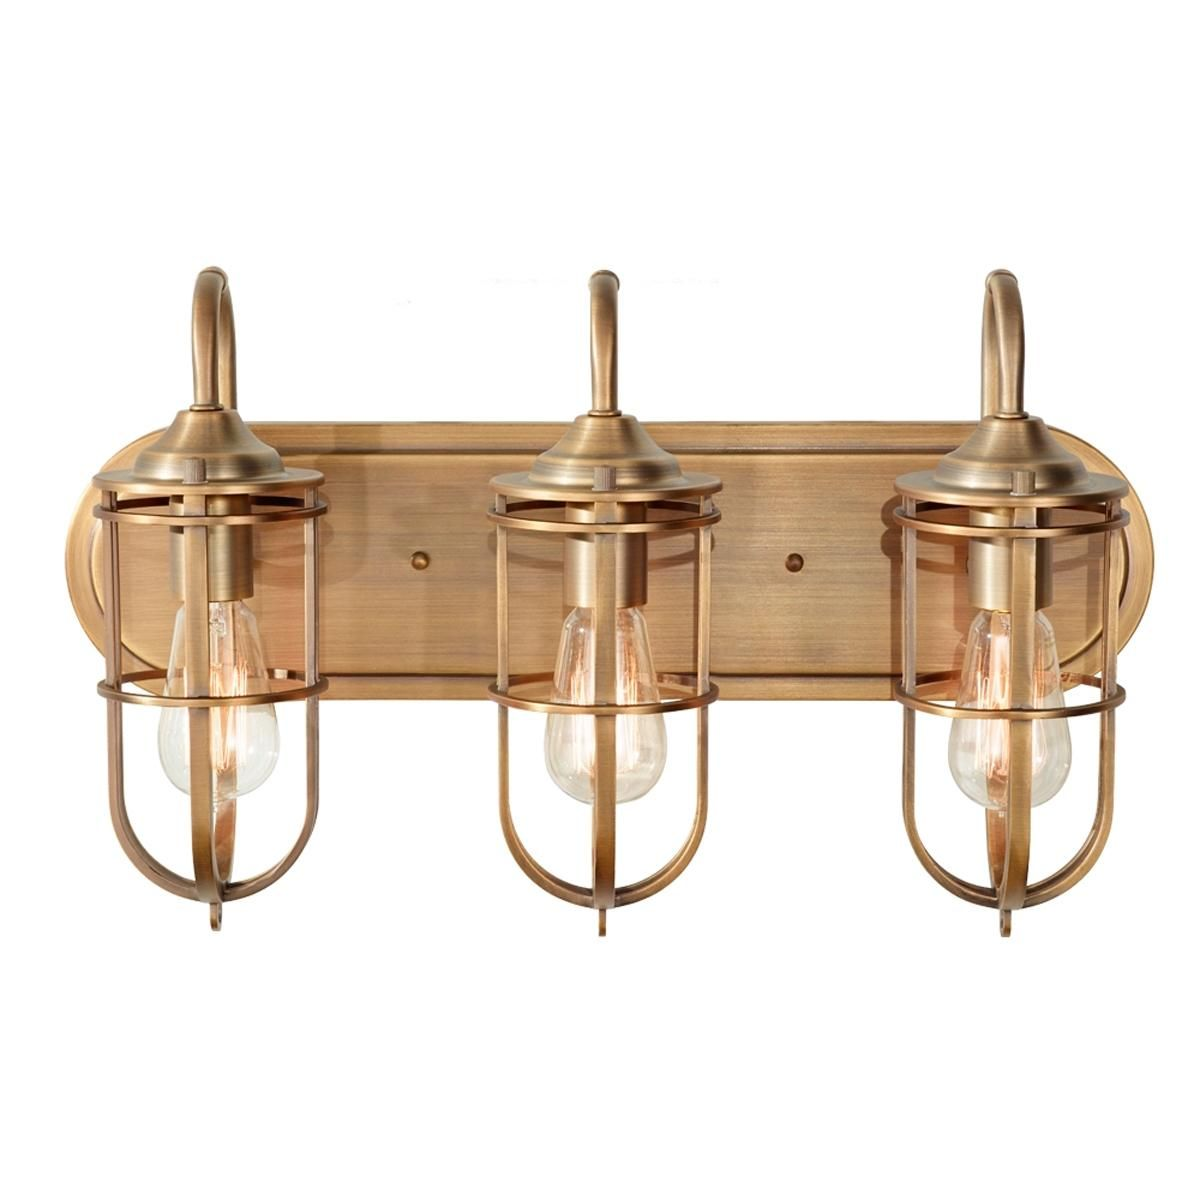 Nautical cage bath light 3 light bath light industrial style nautical cage 3 light bath light restoration and industrial style merge in this quality bath light made of steel and finished in heirloom brass aloadofball Images